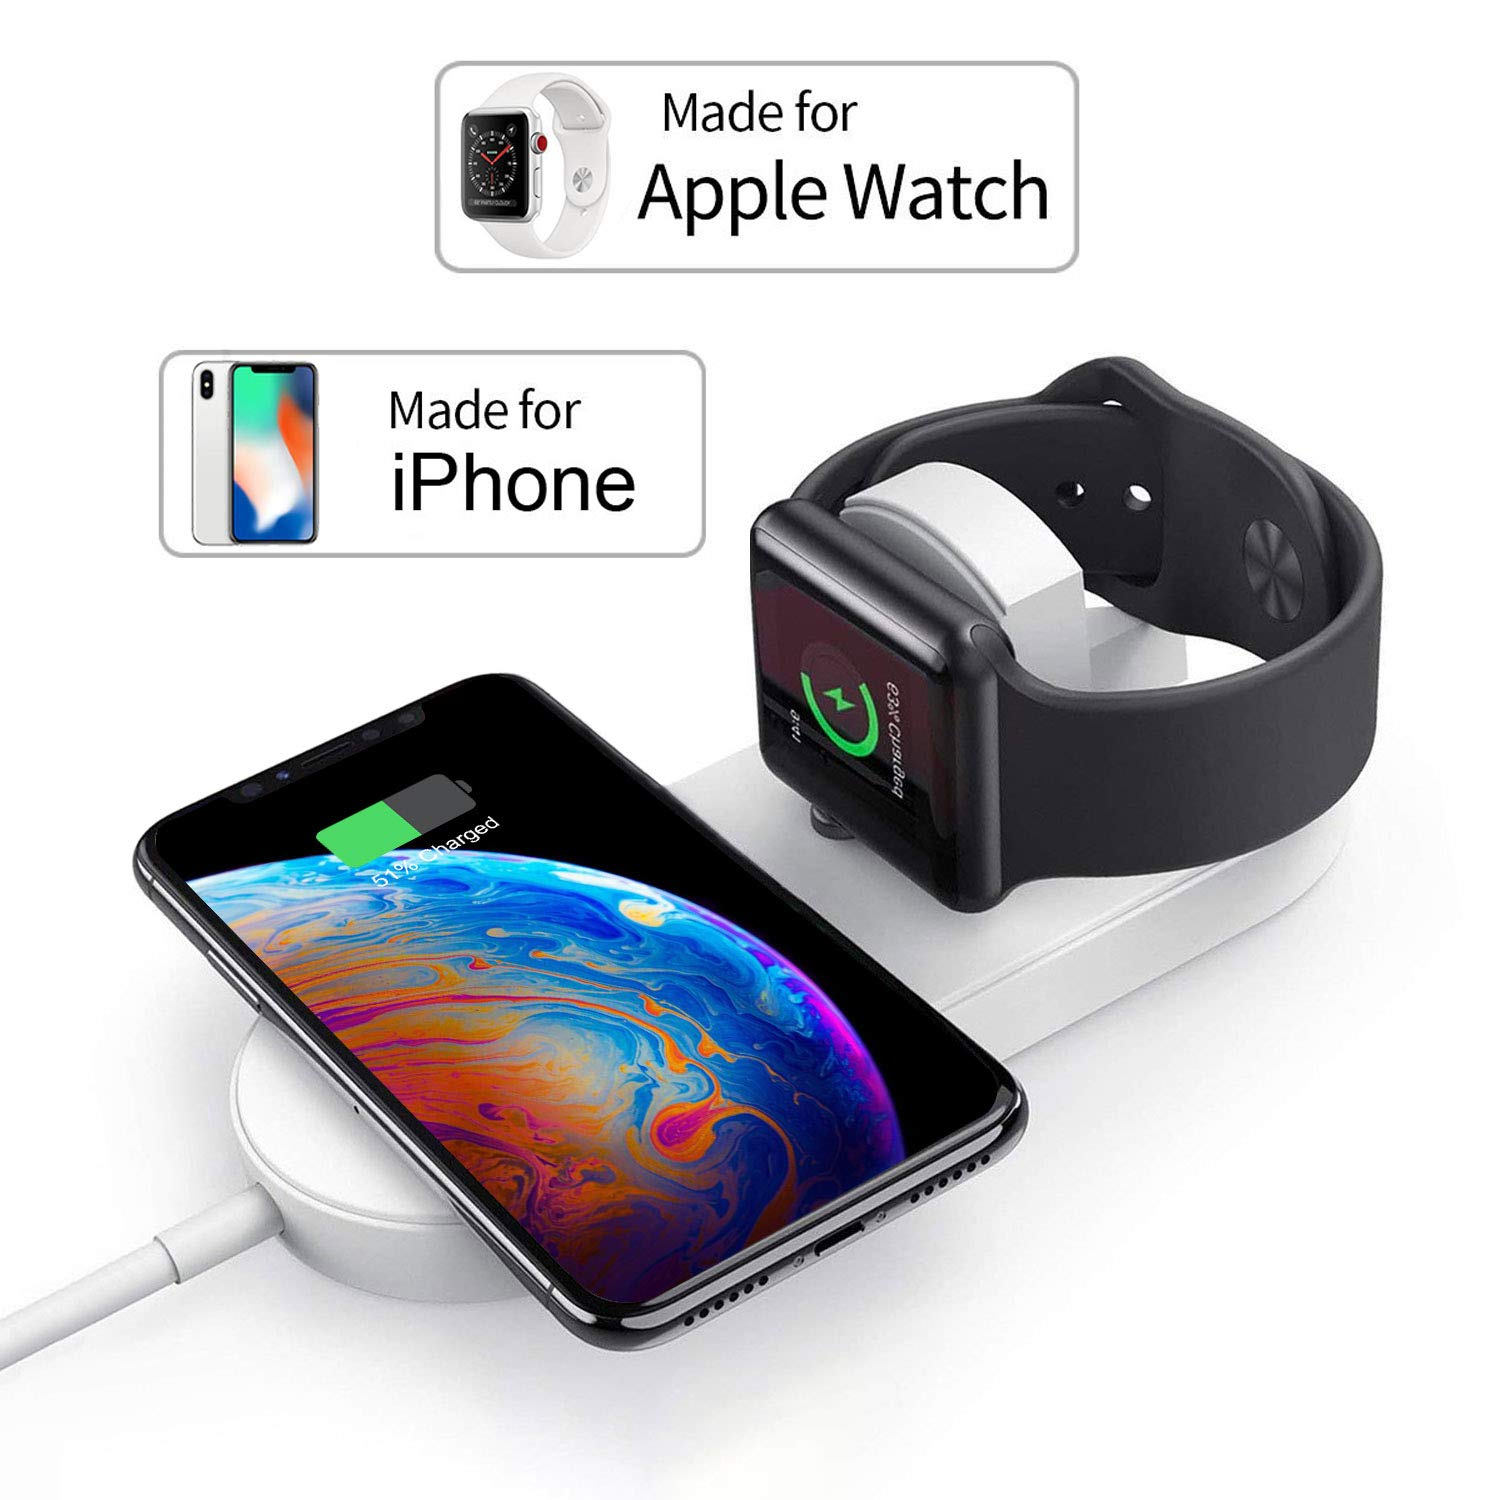 Wireless Charger for Apple Watch, TOGOO Magnetic Wireless Charger 2 in 1 Charging Pad Stand Compatible for with for iPhone Xs/XS MAX/XR/X/ 8/ Plus/iWatch Series 4/3/2/1 38mm 42mm